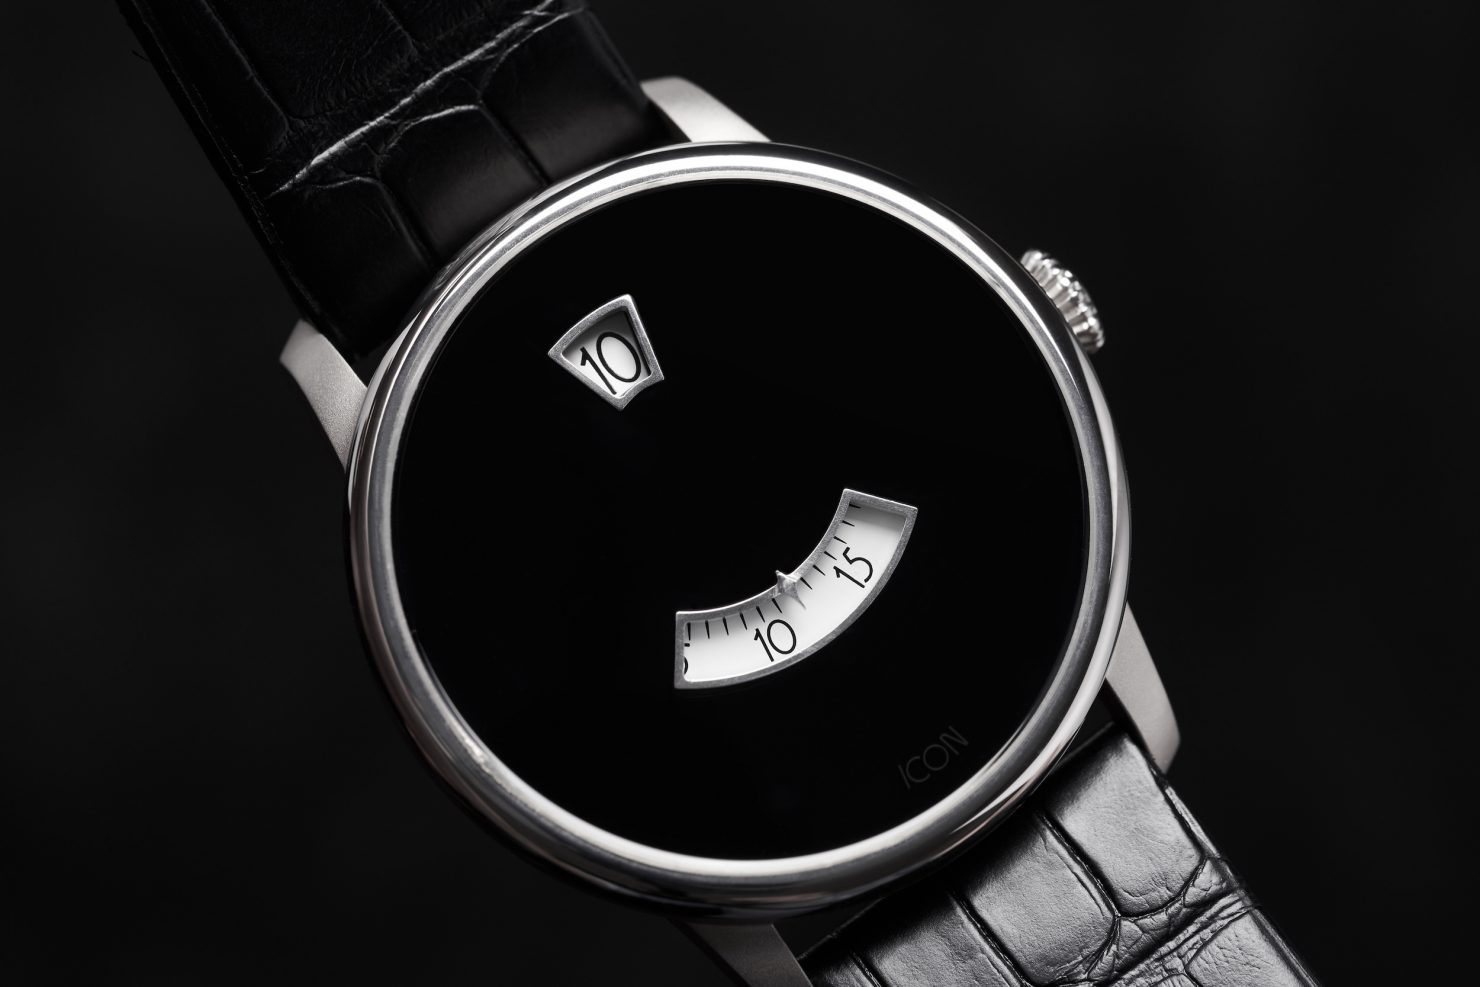 ICON Duesey Watch 3 1480x987 - ICON Duesey Watch